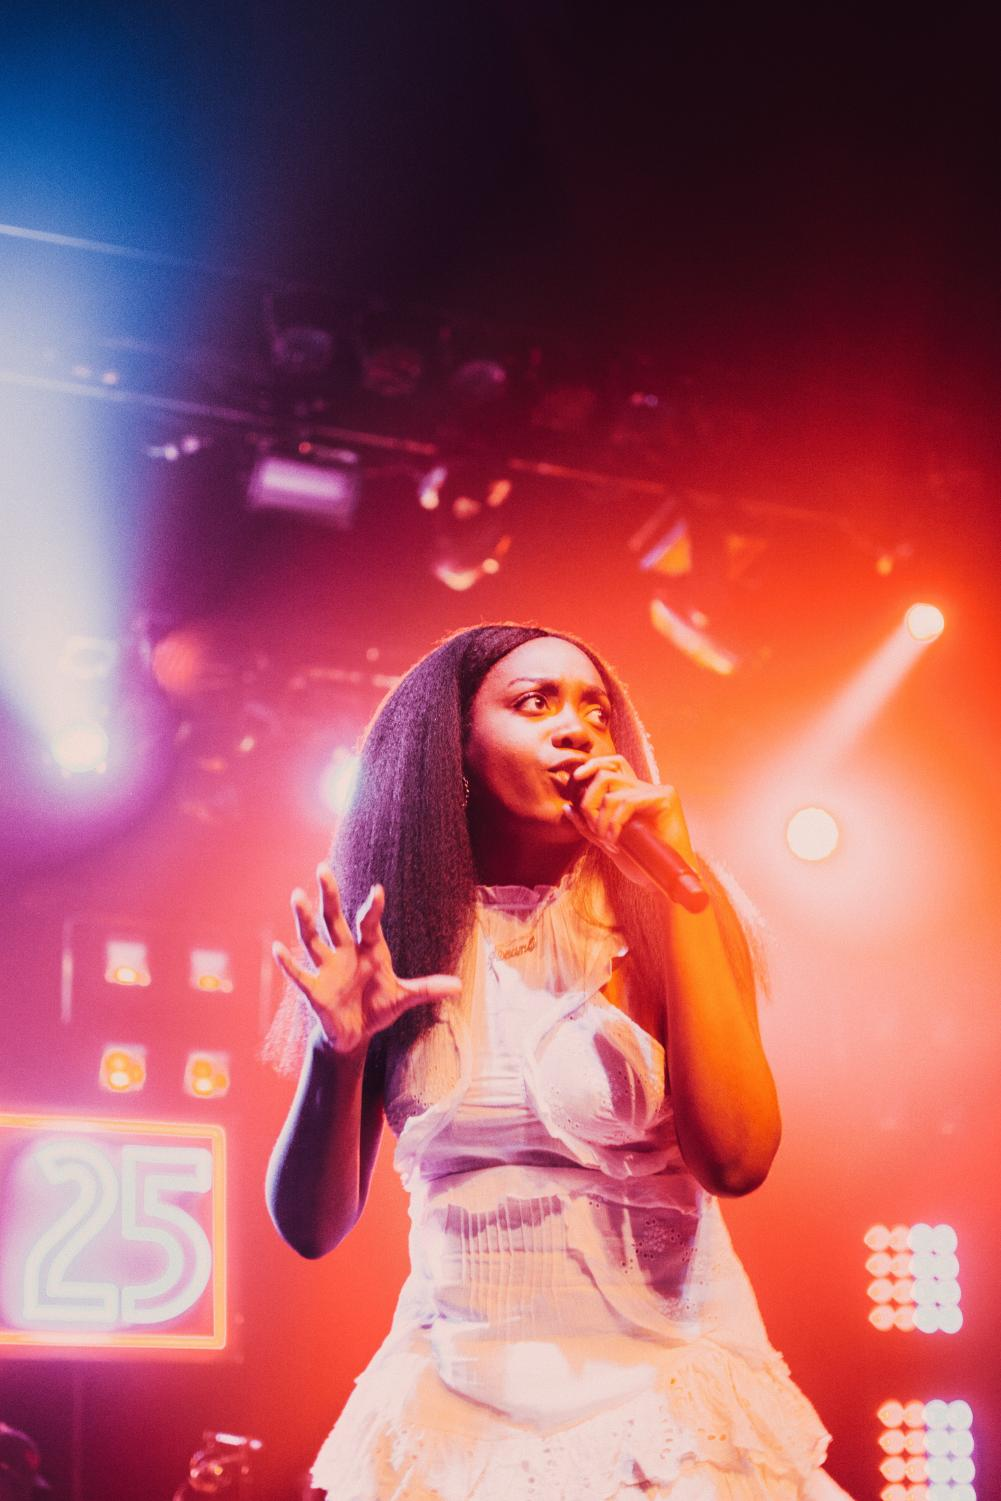 Rapper Noname performed at the Observatory in San Diego on March 16.